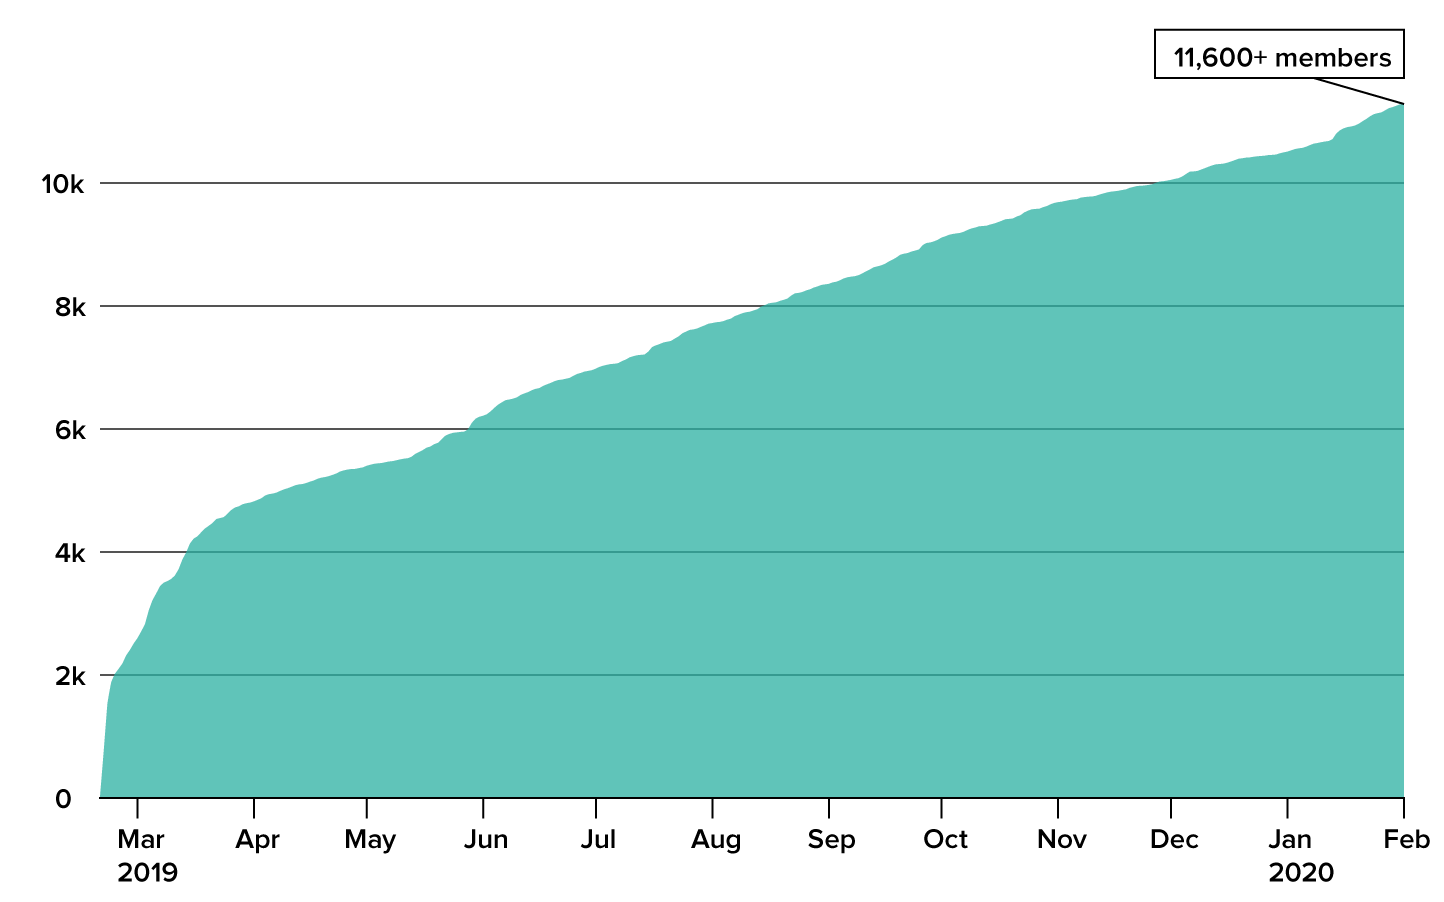 Line graph of the increase in membership over the first year, a steady upward trend to 11,600